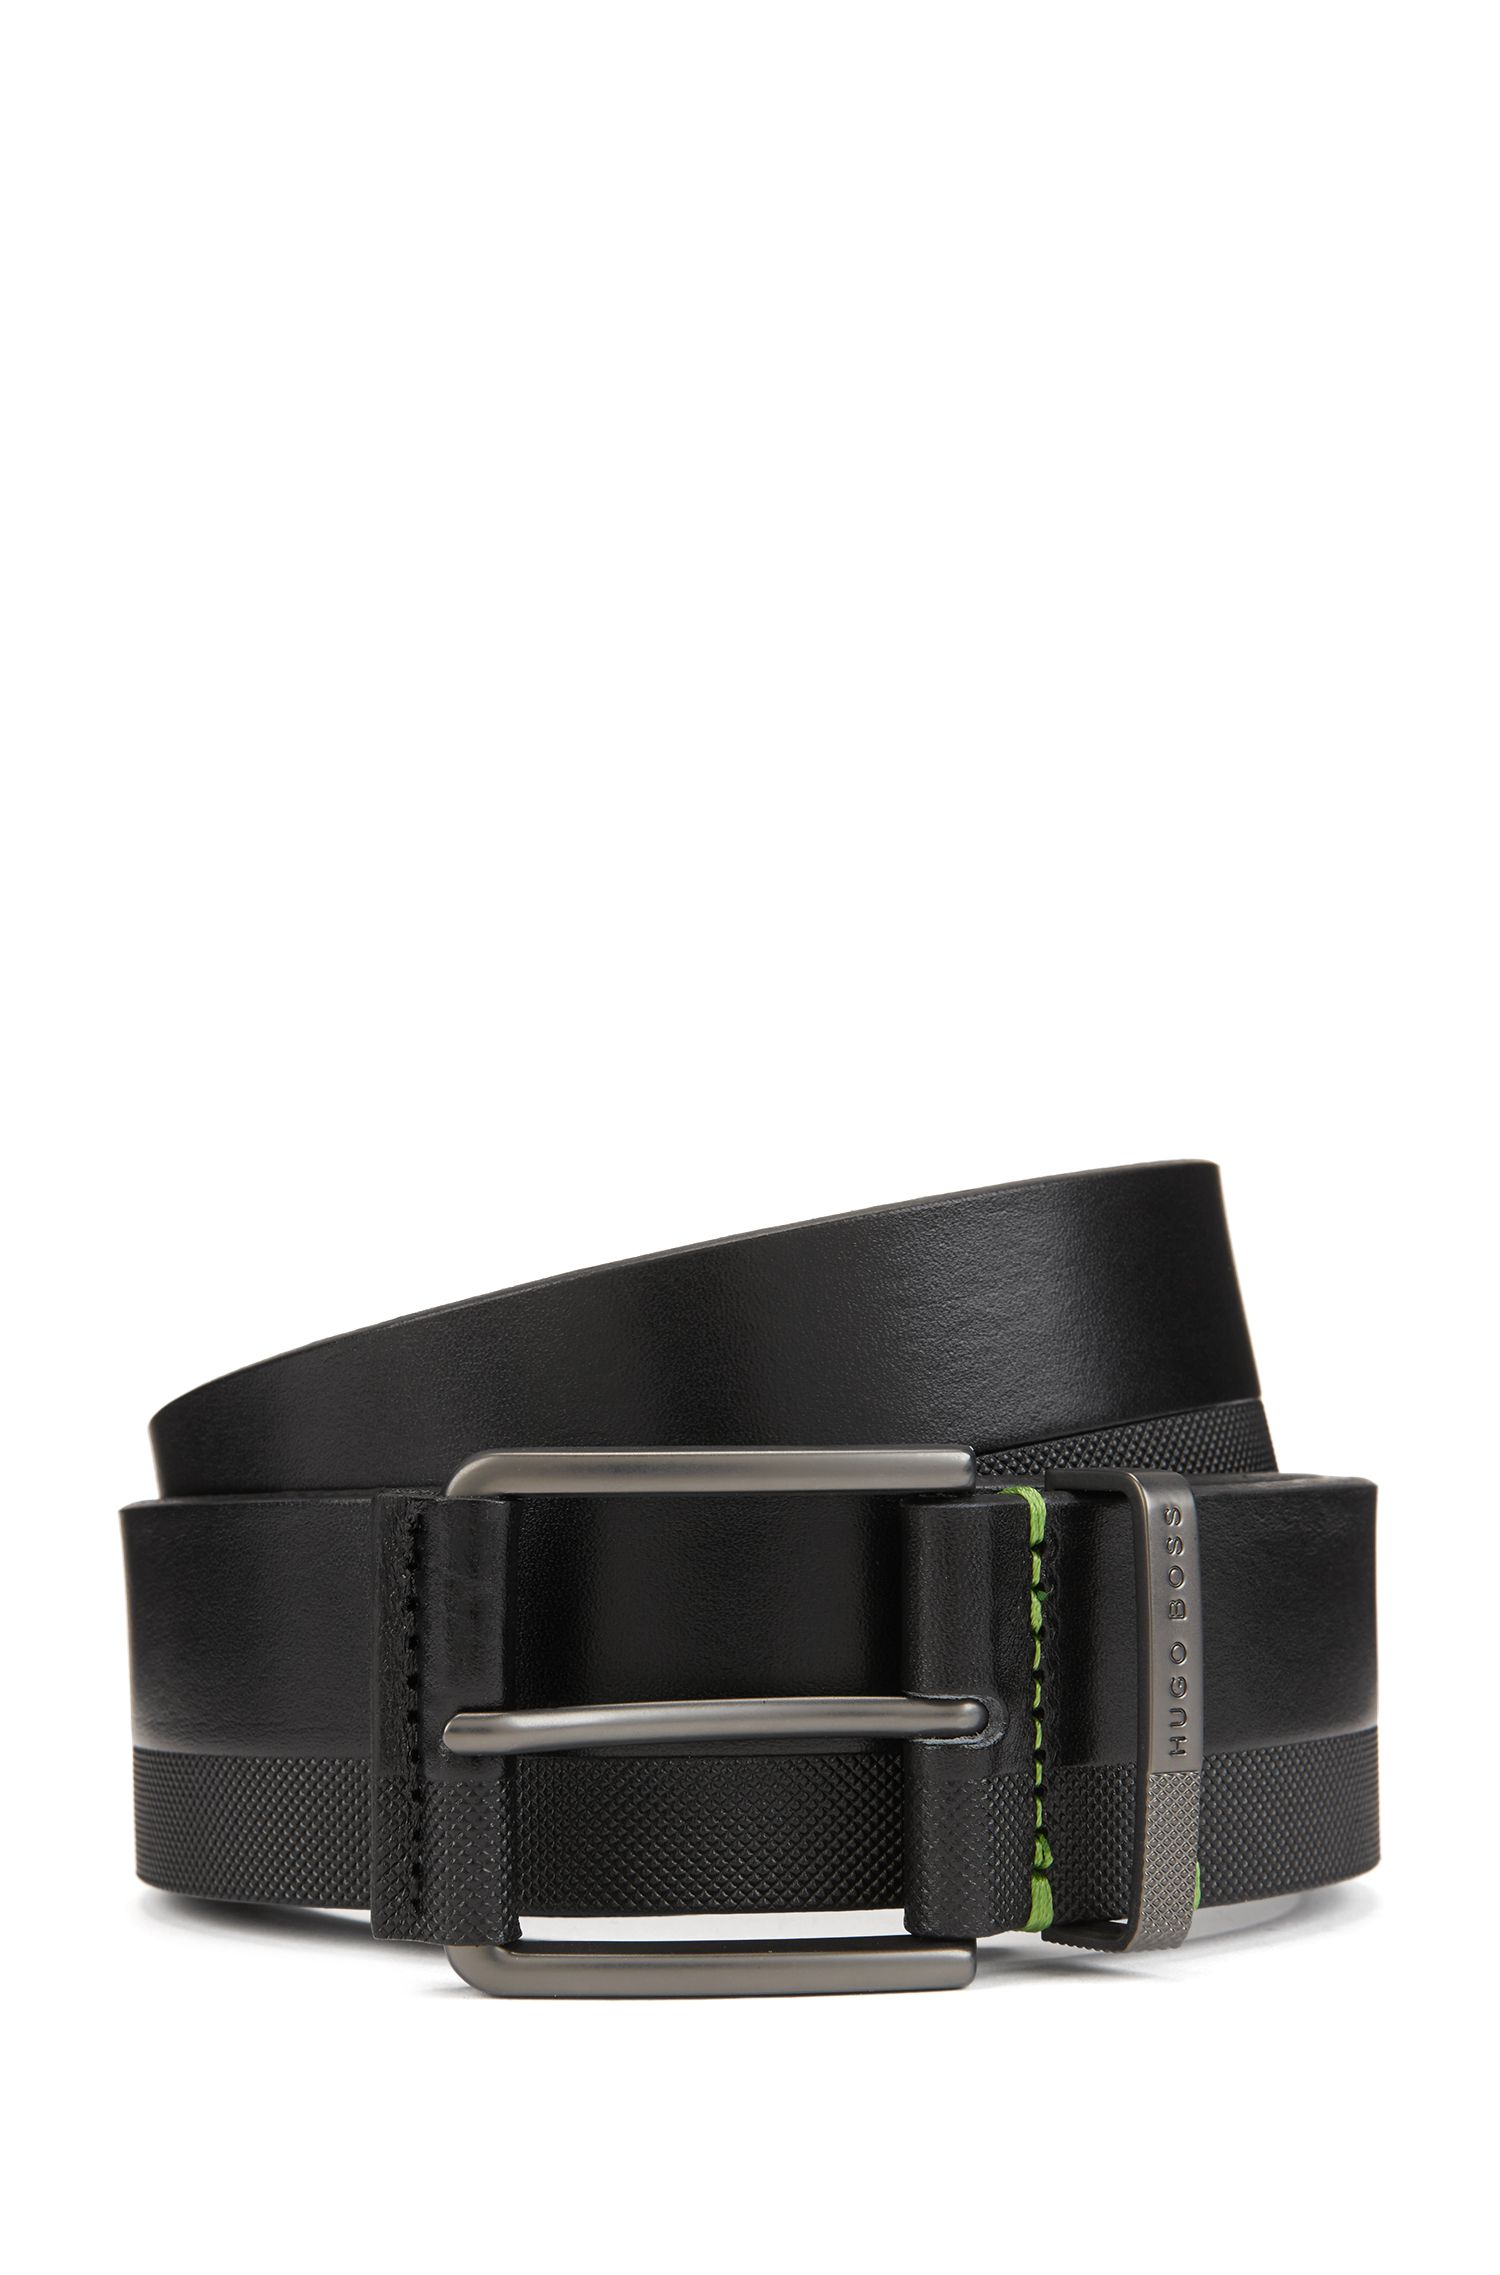 Embossed-leather belt with matte gunmetal buckle